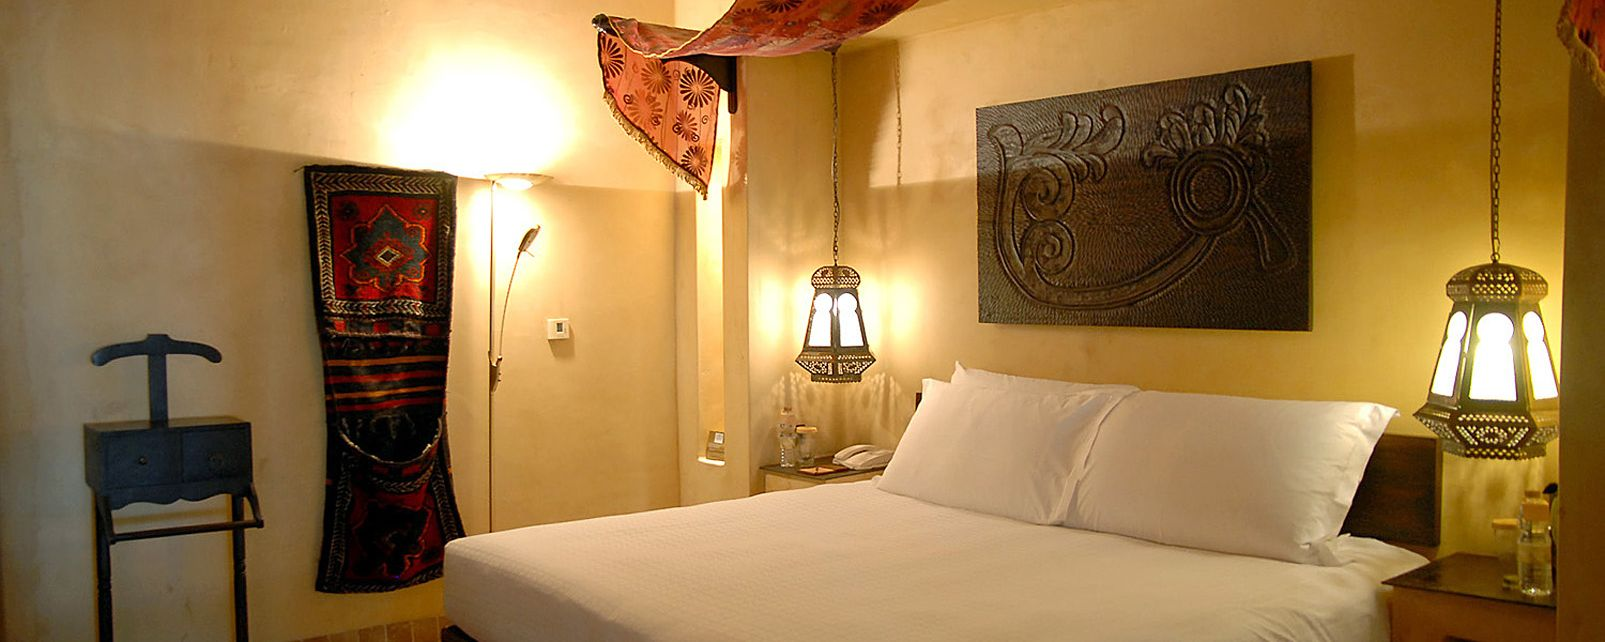 Hotel Bab al Shams Desert Resort